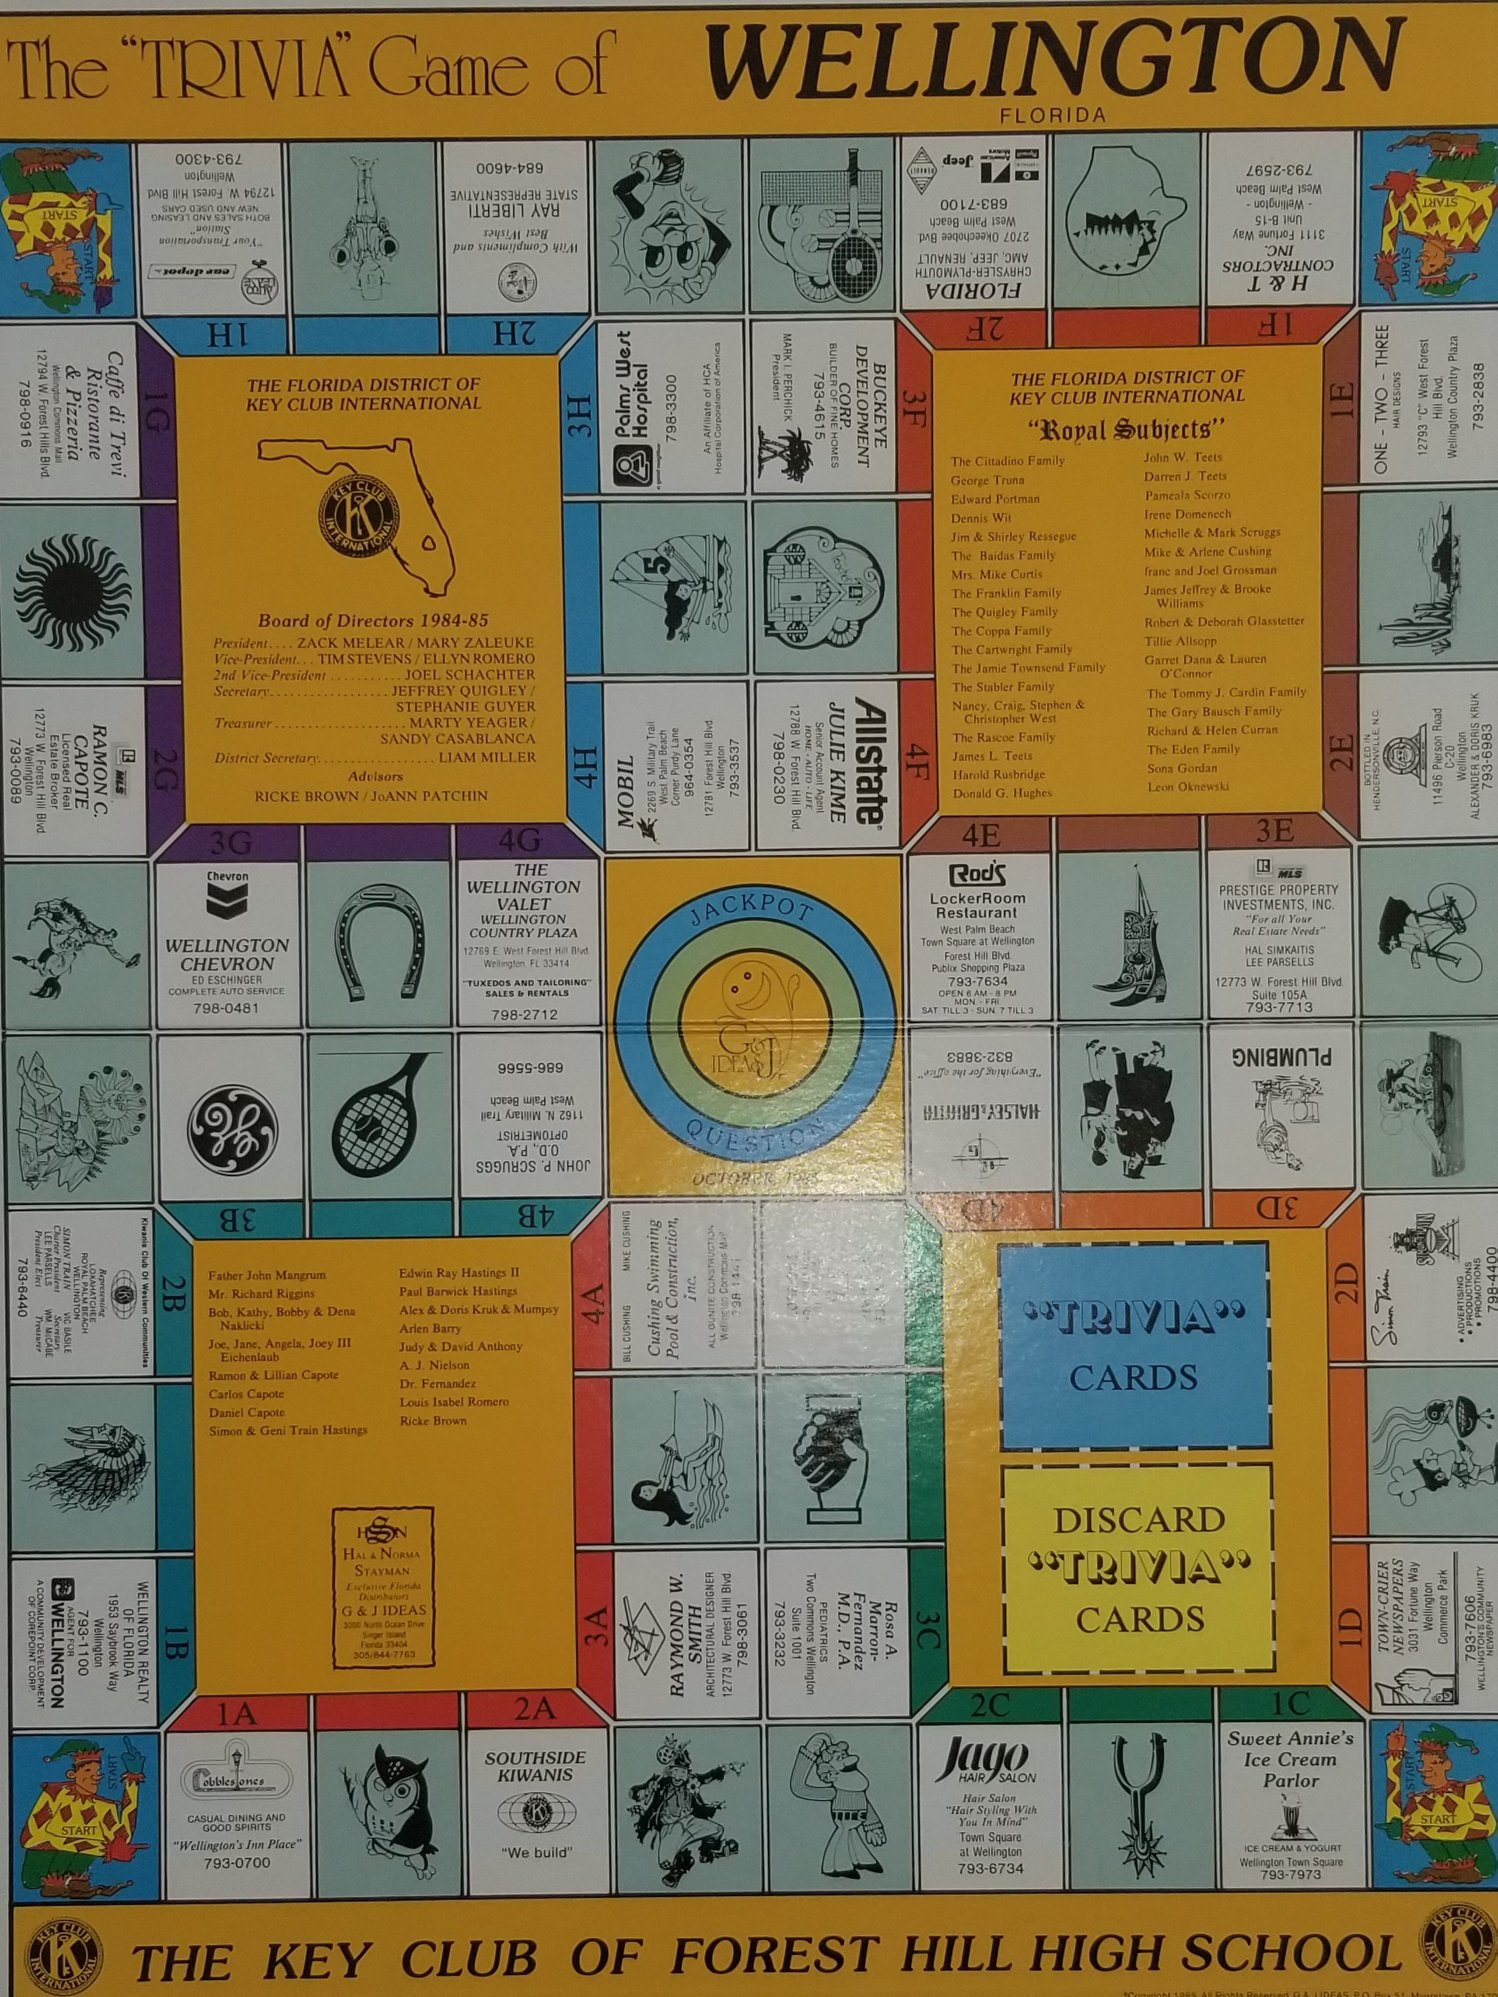 Trivia Game of Wellington created in 1985 by The Key Club of Forest Hill High School